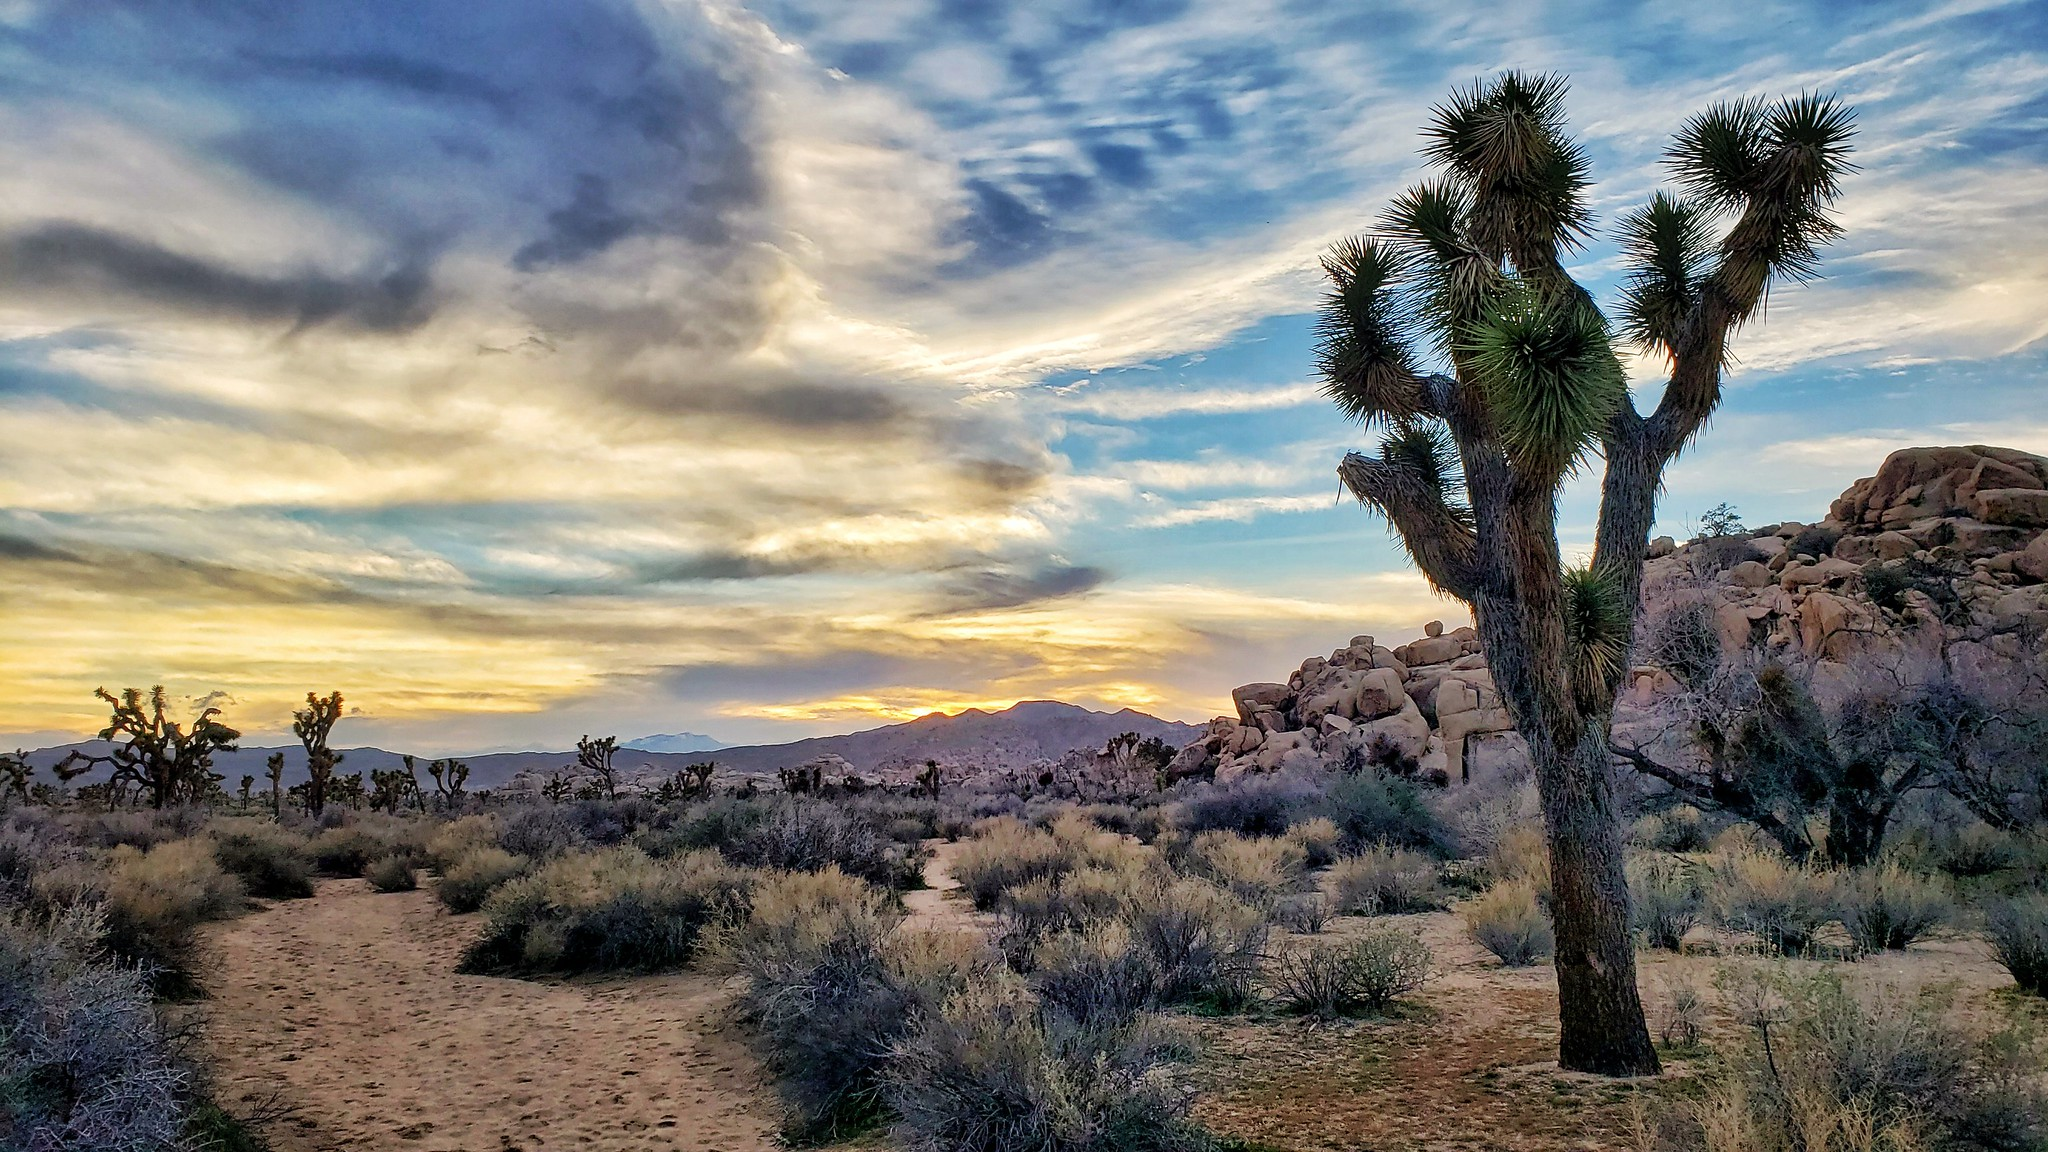 national parks perfect for winter hiking trips - joshua tree national park PC Randy Durrum via Flickr